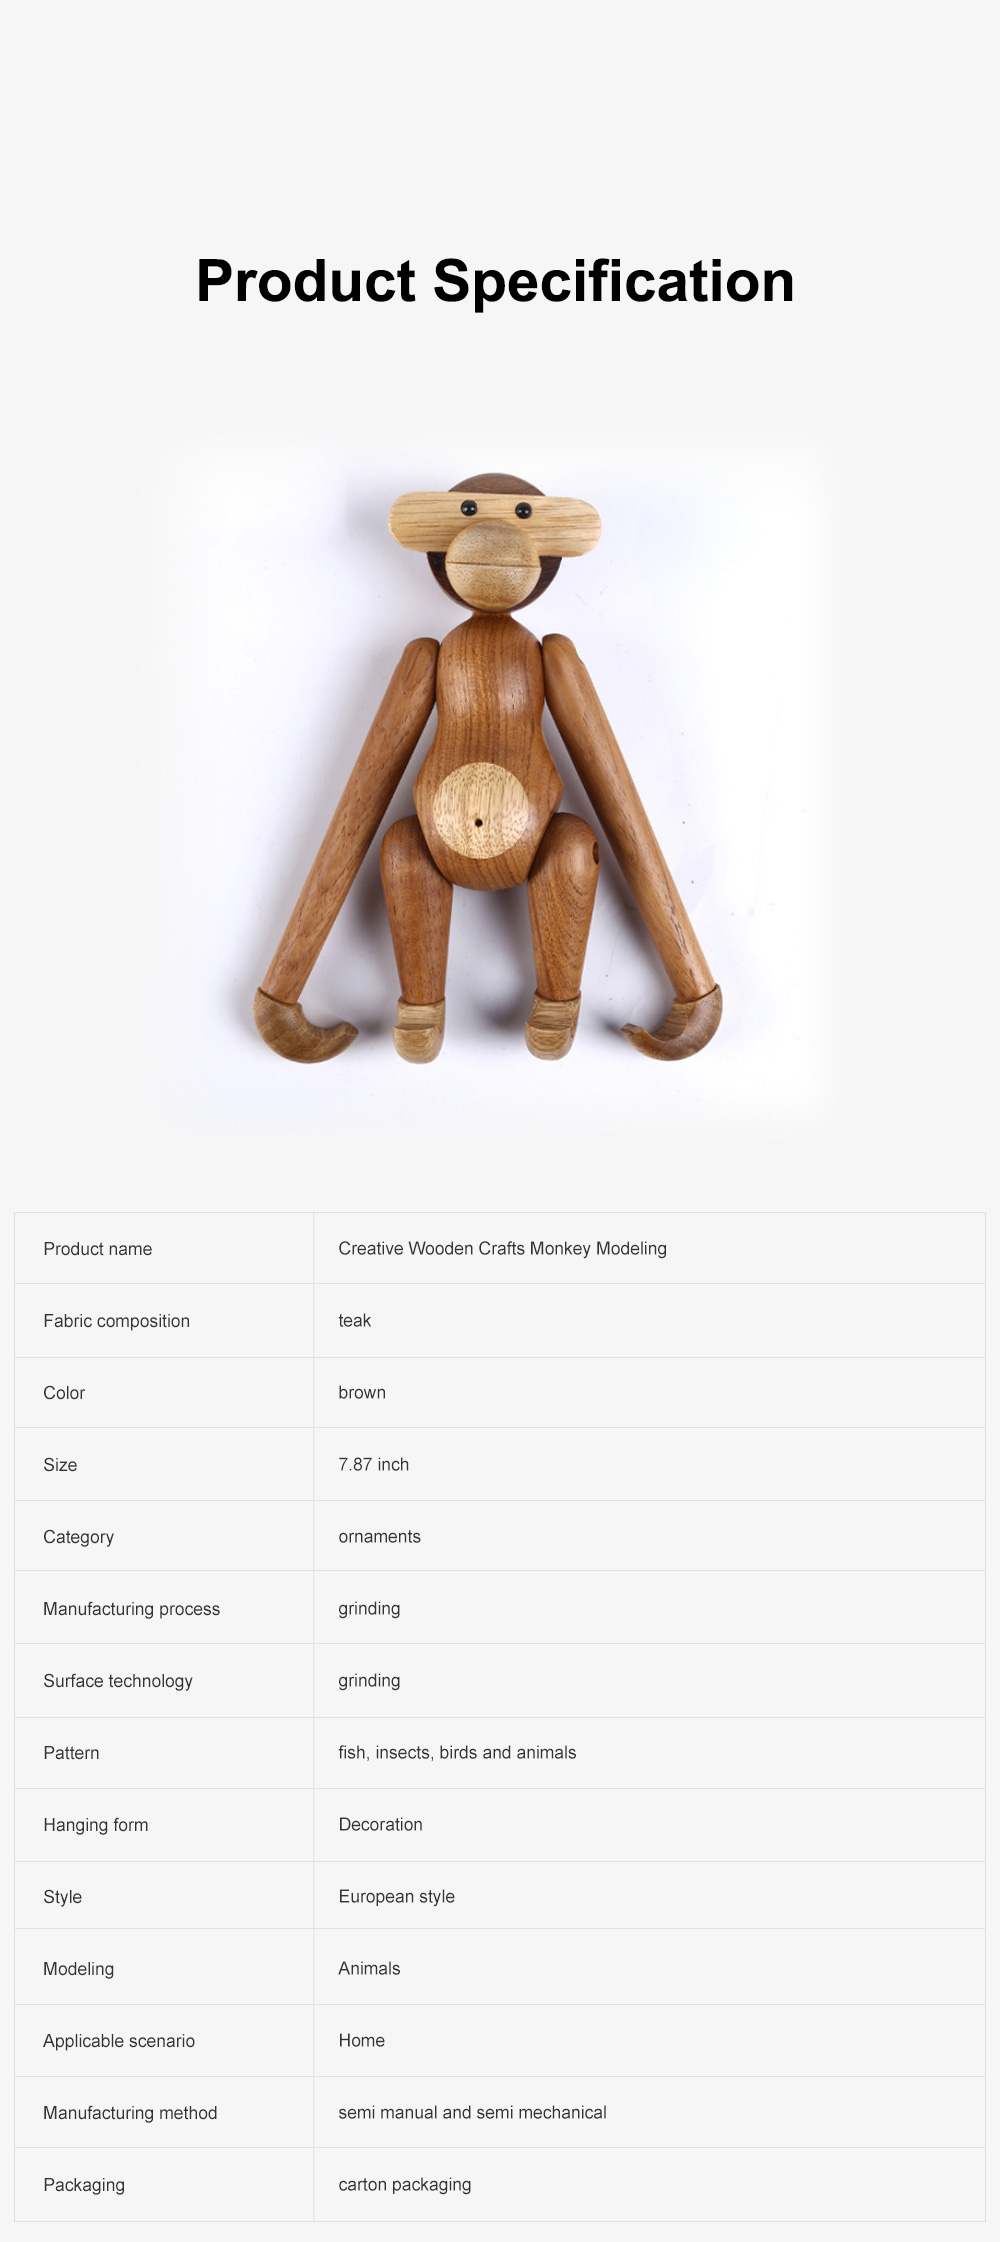 Creative Wooden Crafts Monkey Modeling Ornament Puppet Monkey Rotatable Head Limbs Nordic Denmark Teak Gift Ornament 6